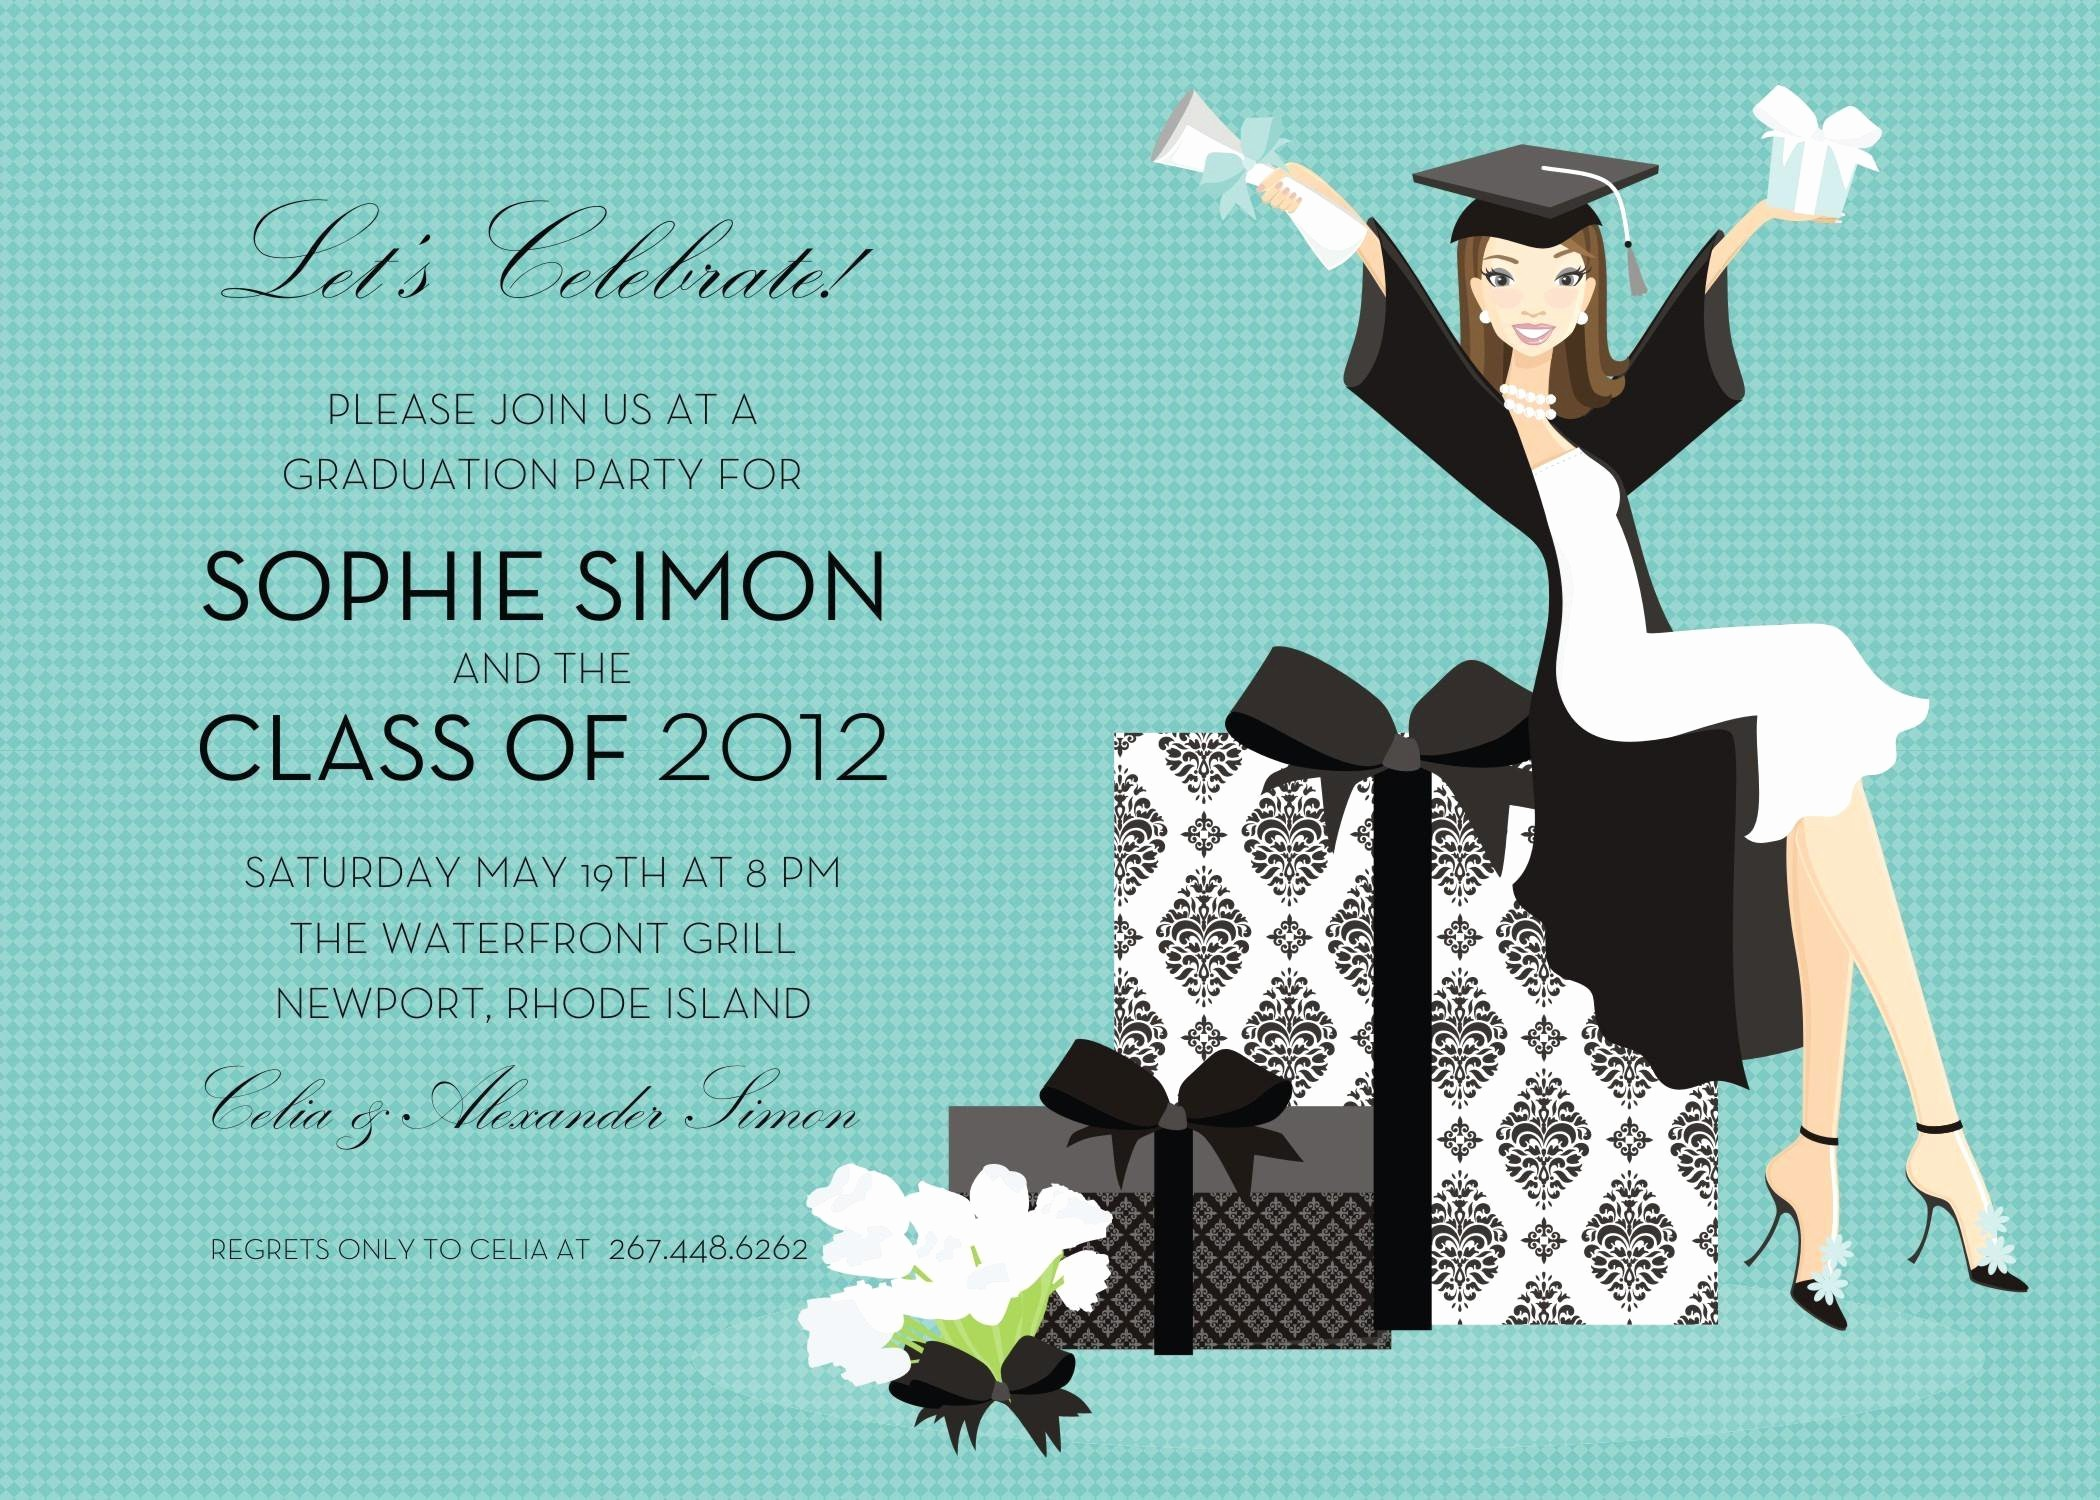 Free Graduation Party Invitations Templates Awesome Free Graduation Invitation Templates Free Graduation